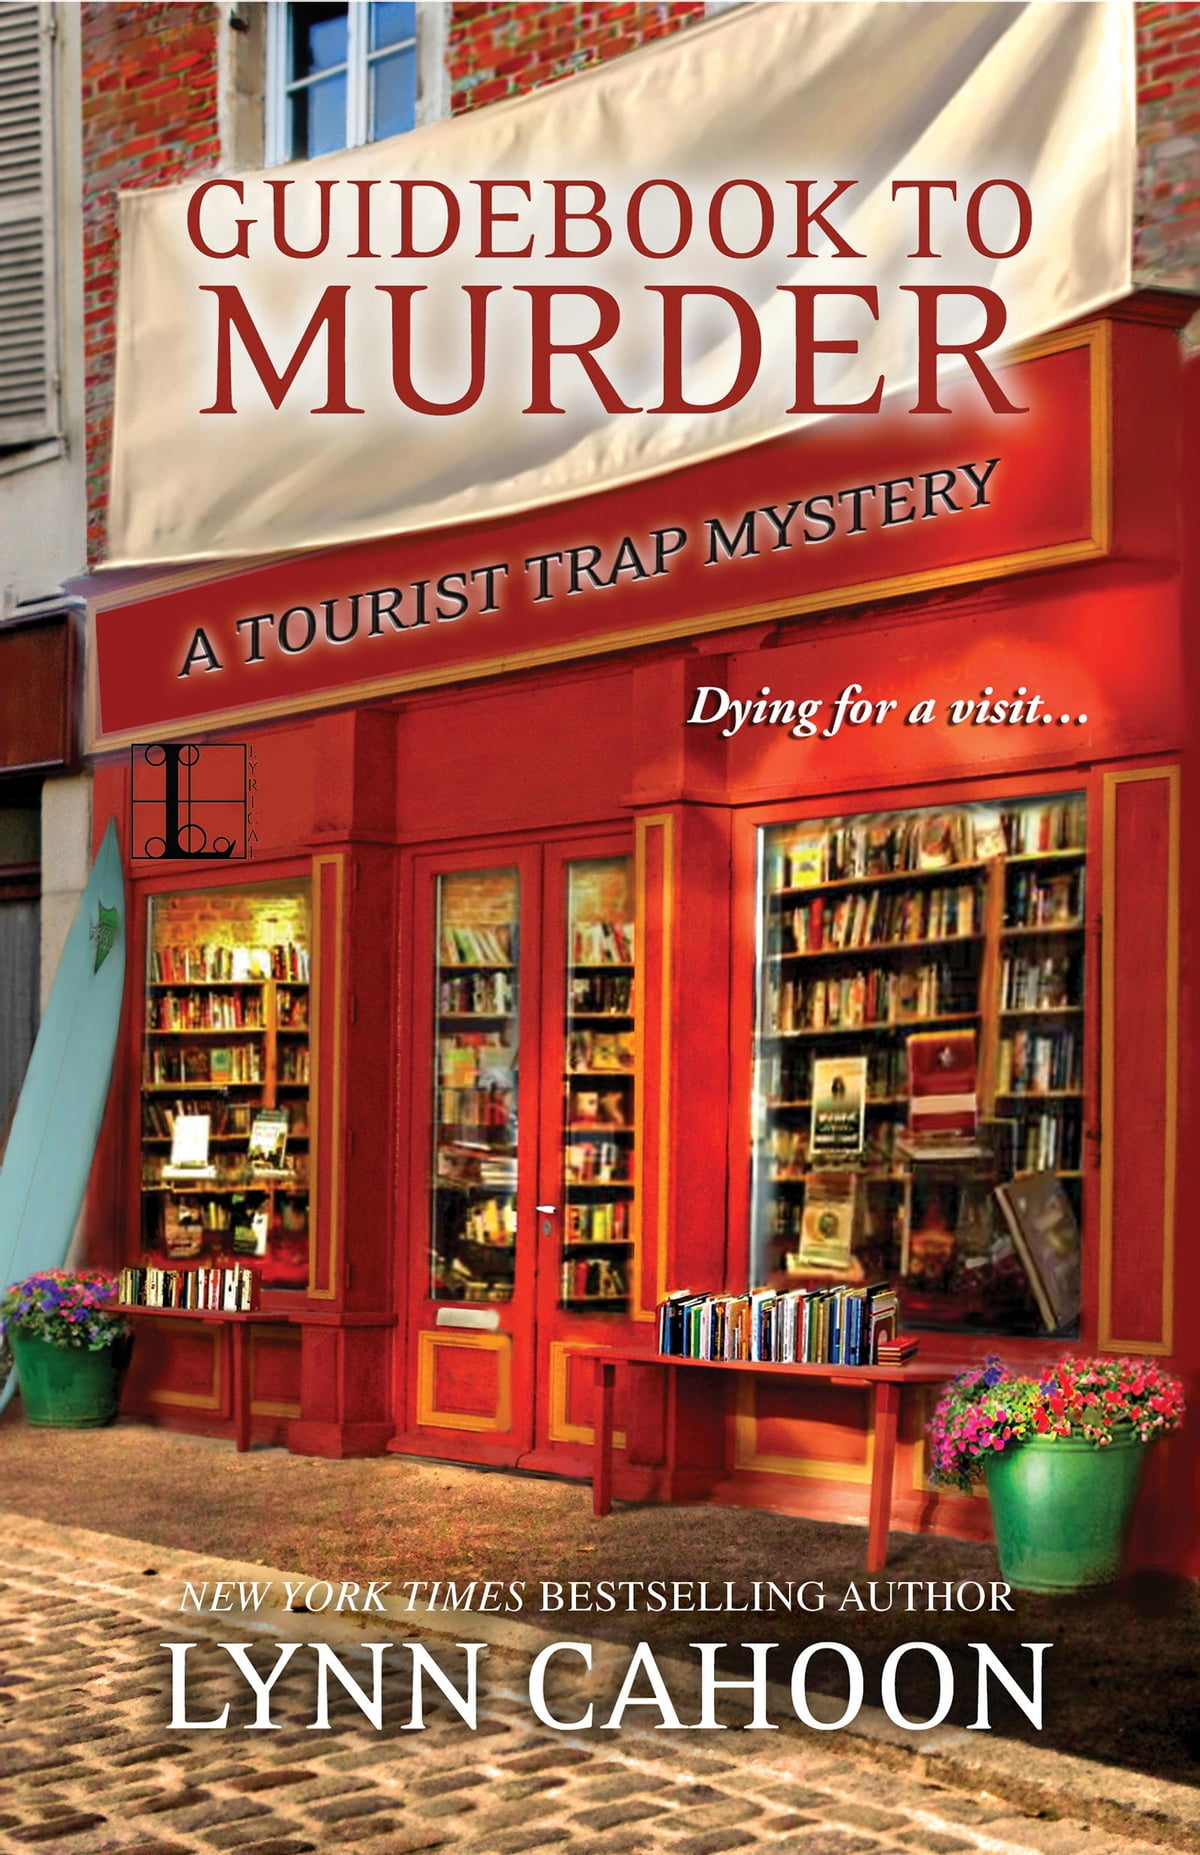 Guidebook To Murder Ebook By Lynn Cahoon  9781601832382  Rakuten Kobo